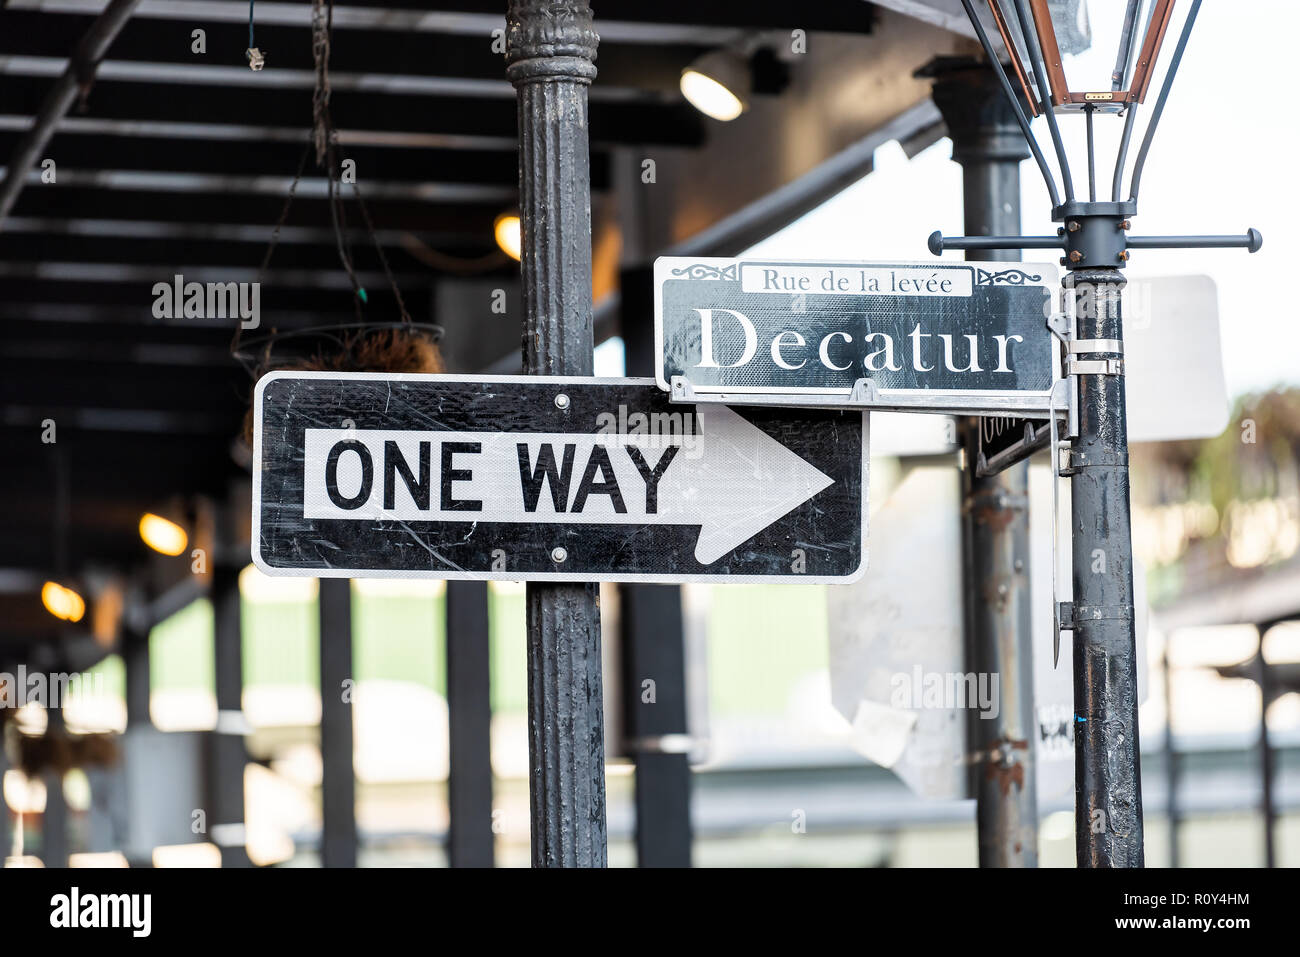 New Orleans, USA Decatur street intersection sign in Louisiana town, city, nobody, French Quarter, one way - Stock Image